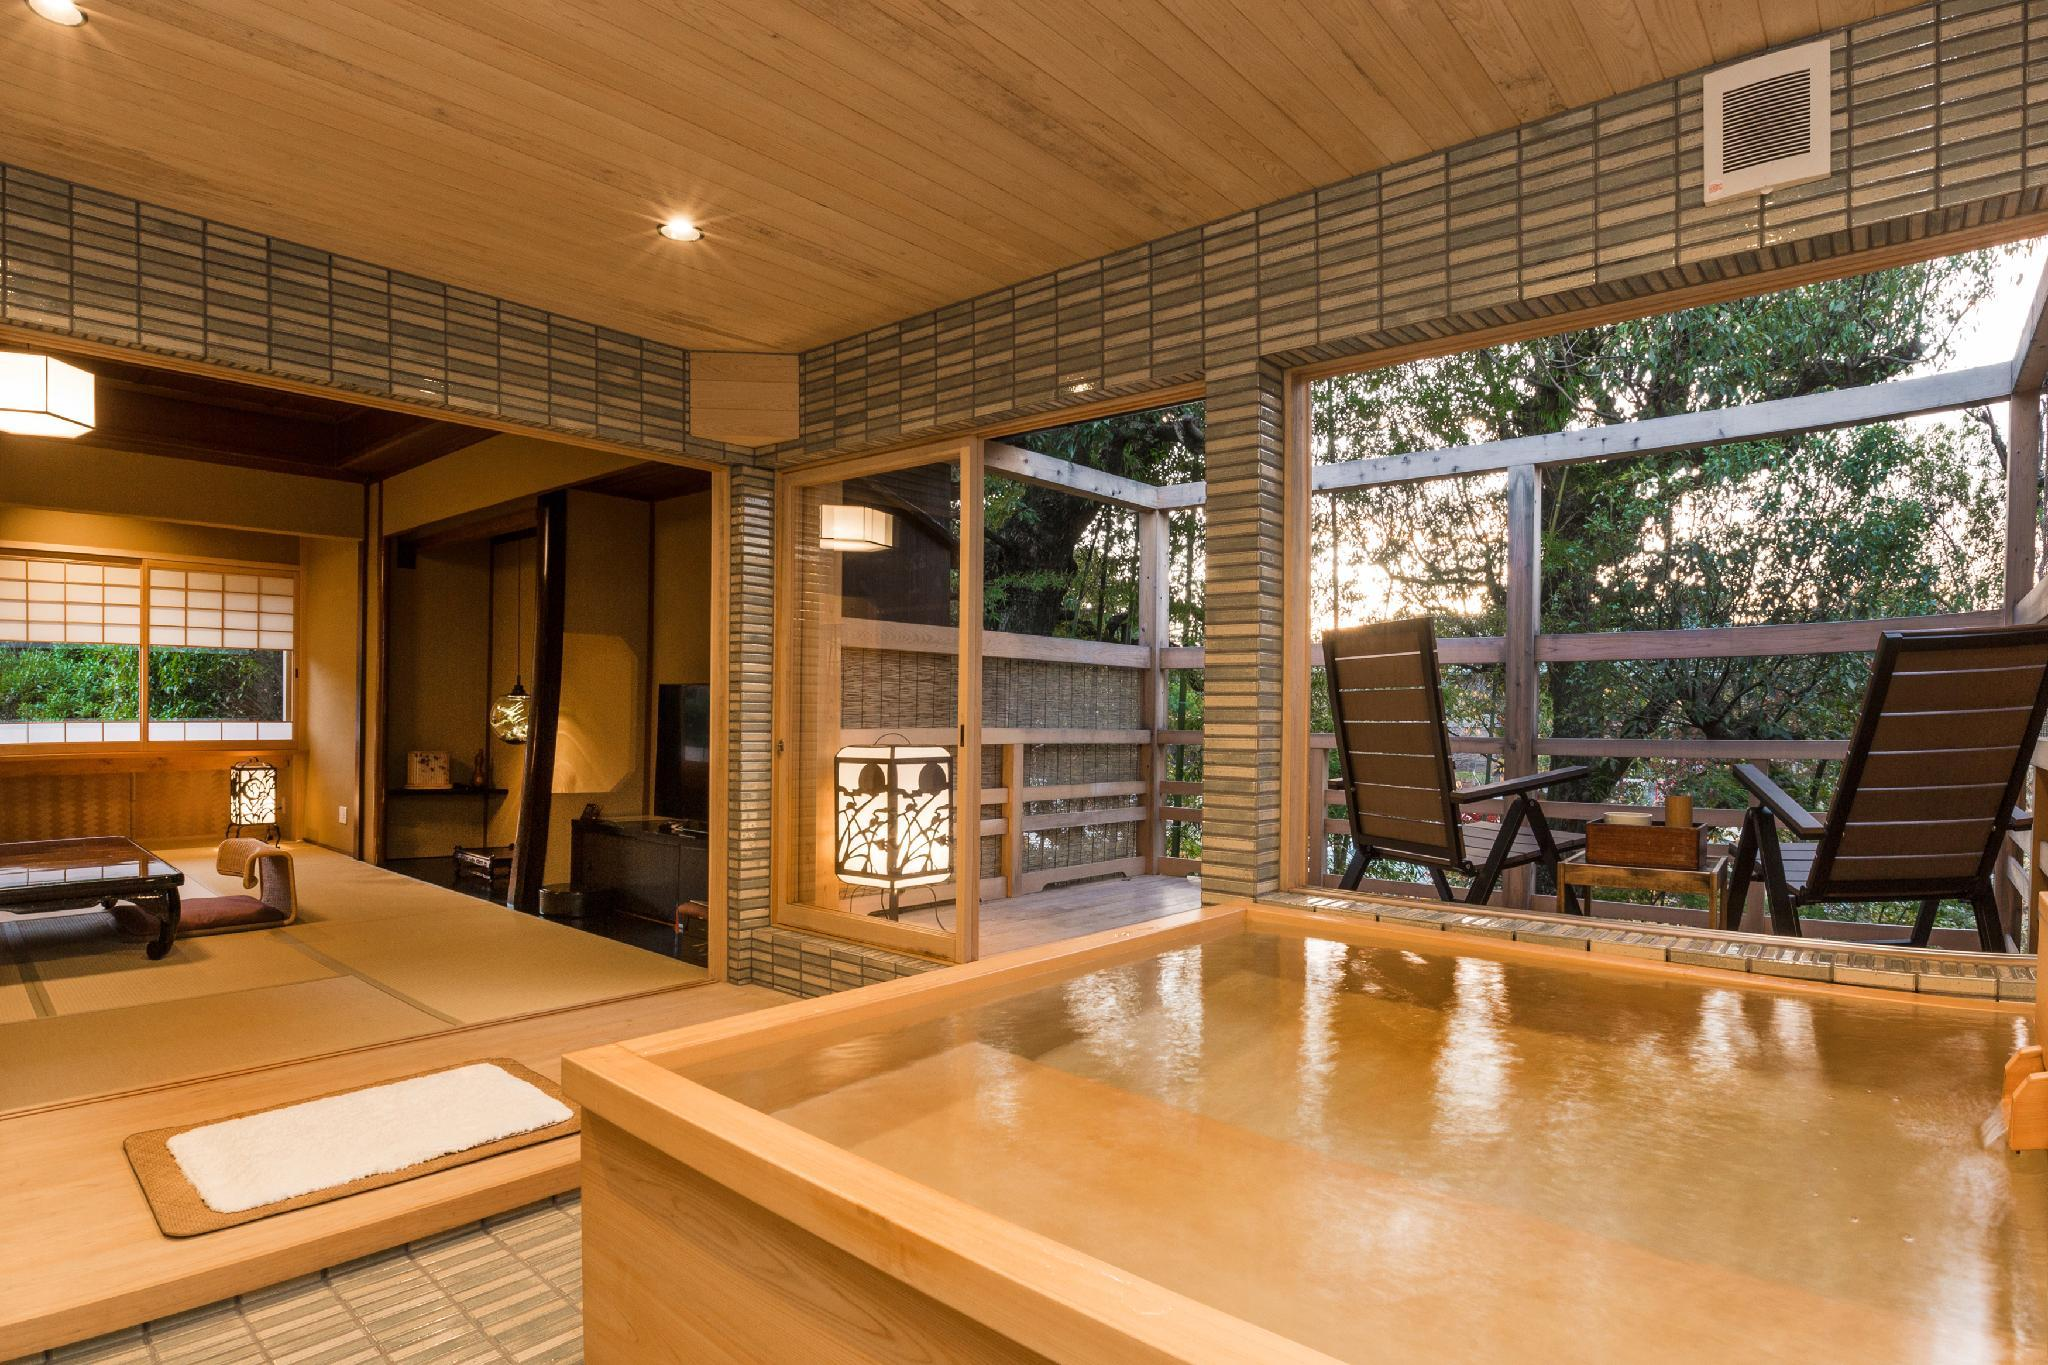 日式住宅套房 - 有私人小型露天浴池 (Japanese Style Residential Suite with Private Semi Open-Air Bath)